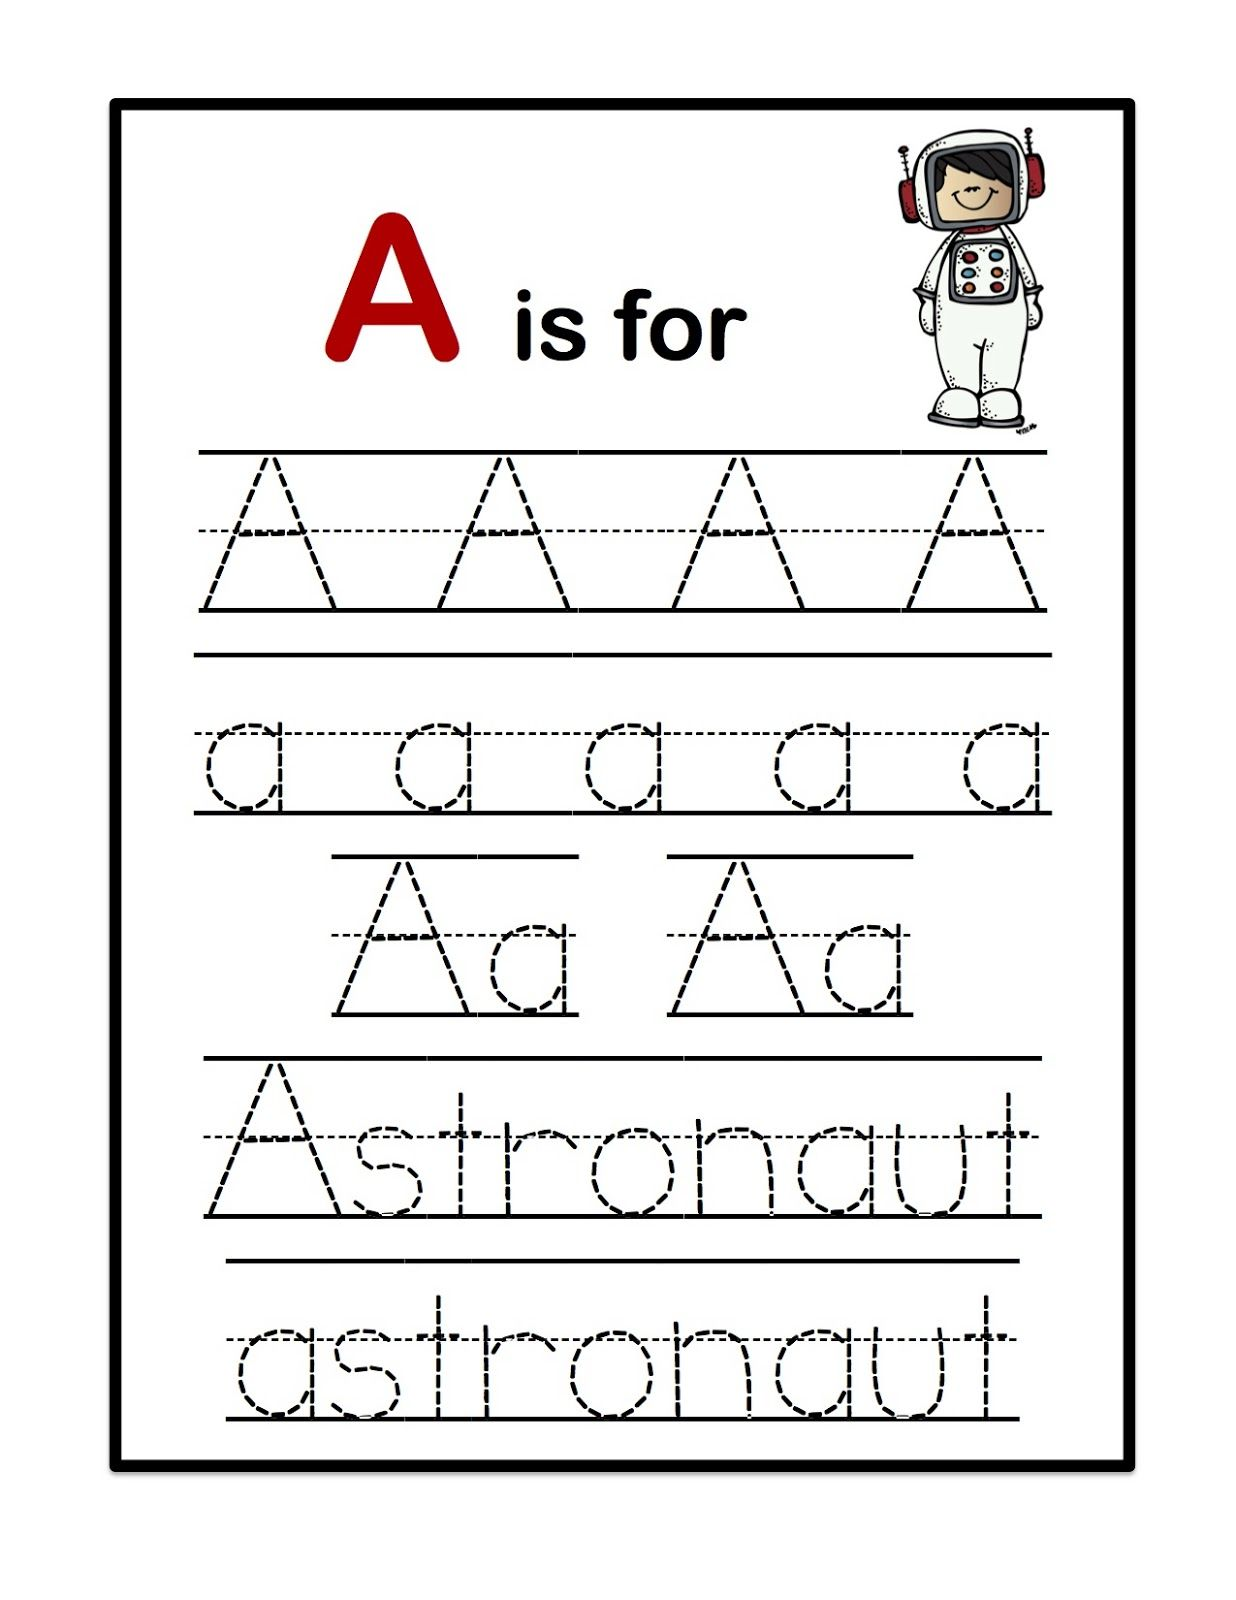 Pin By Suzanne Malone On Pre K Space In 2021 Space Preschool Preschool Printables Space Lessons [ 1600 x 1236 Pixel ]